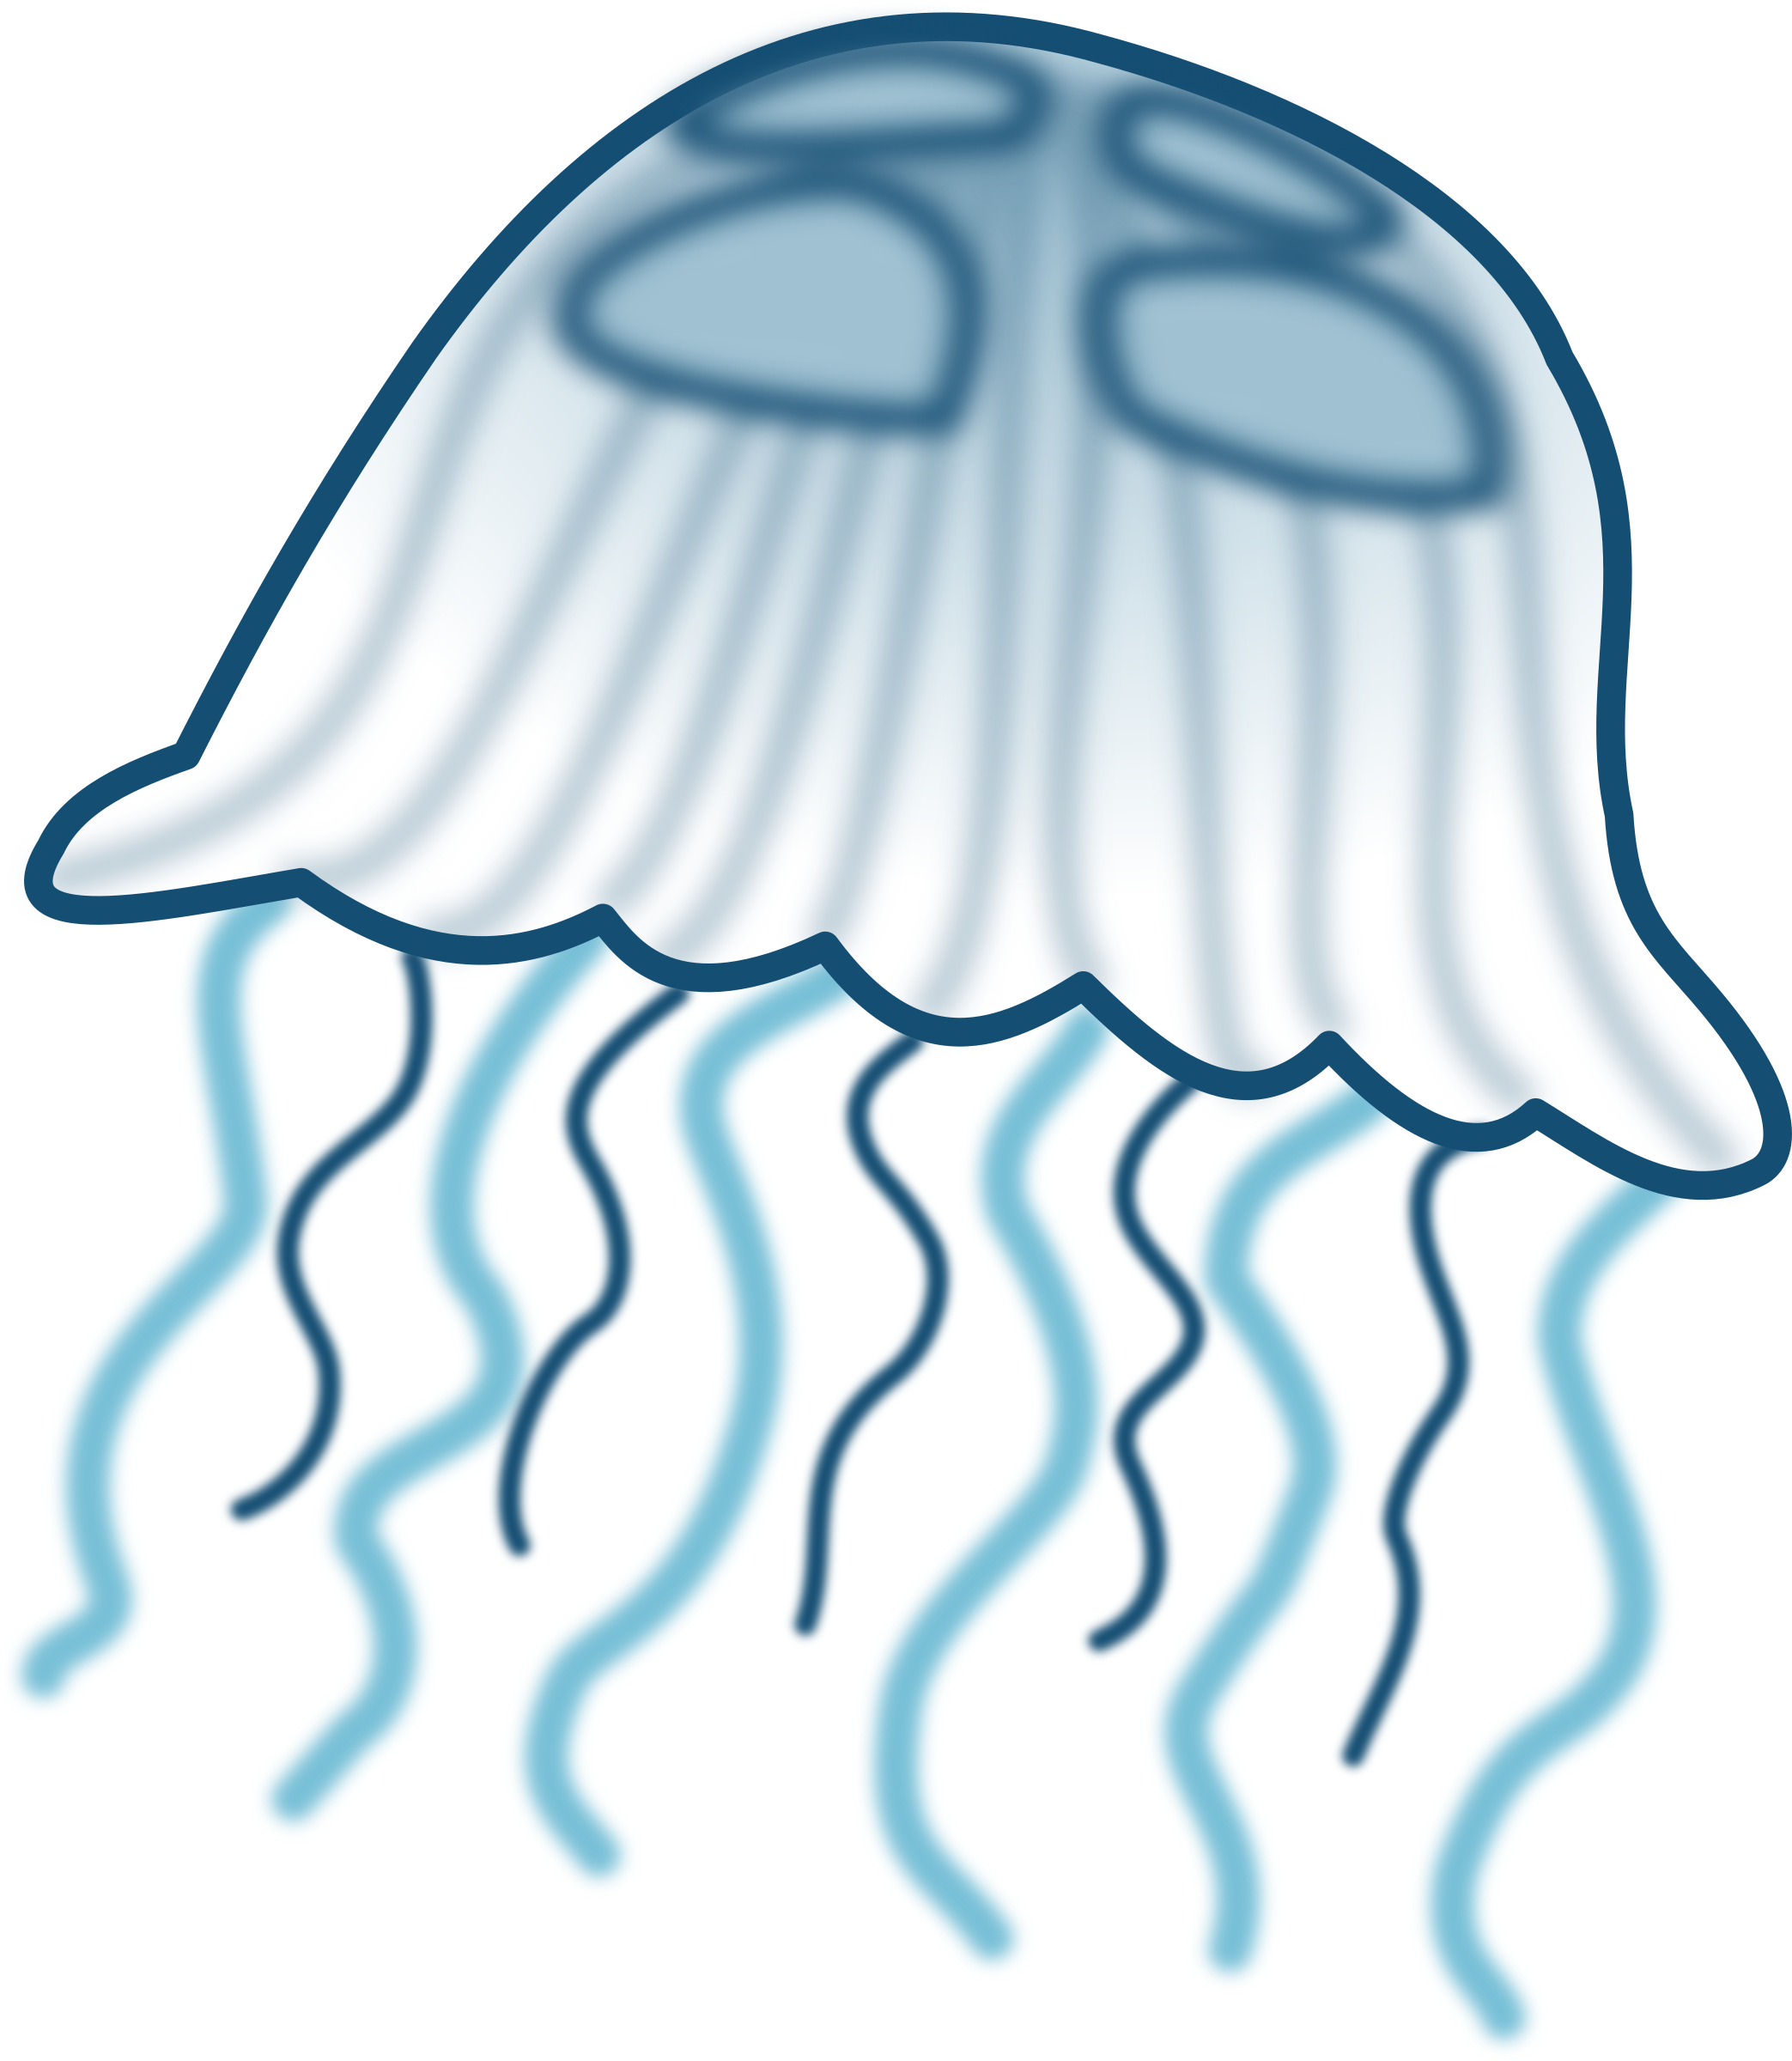 Jellyfish by Moini